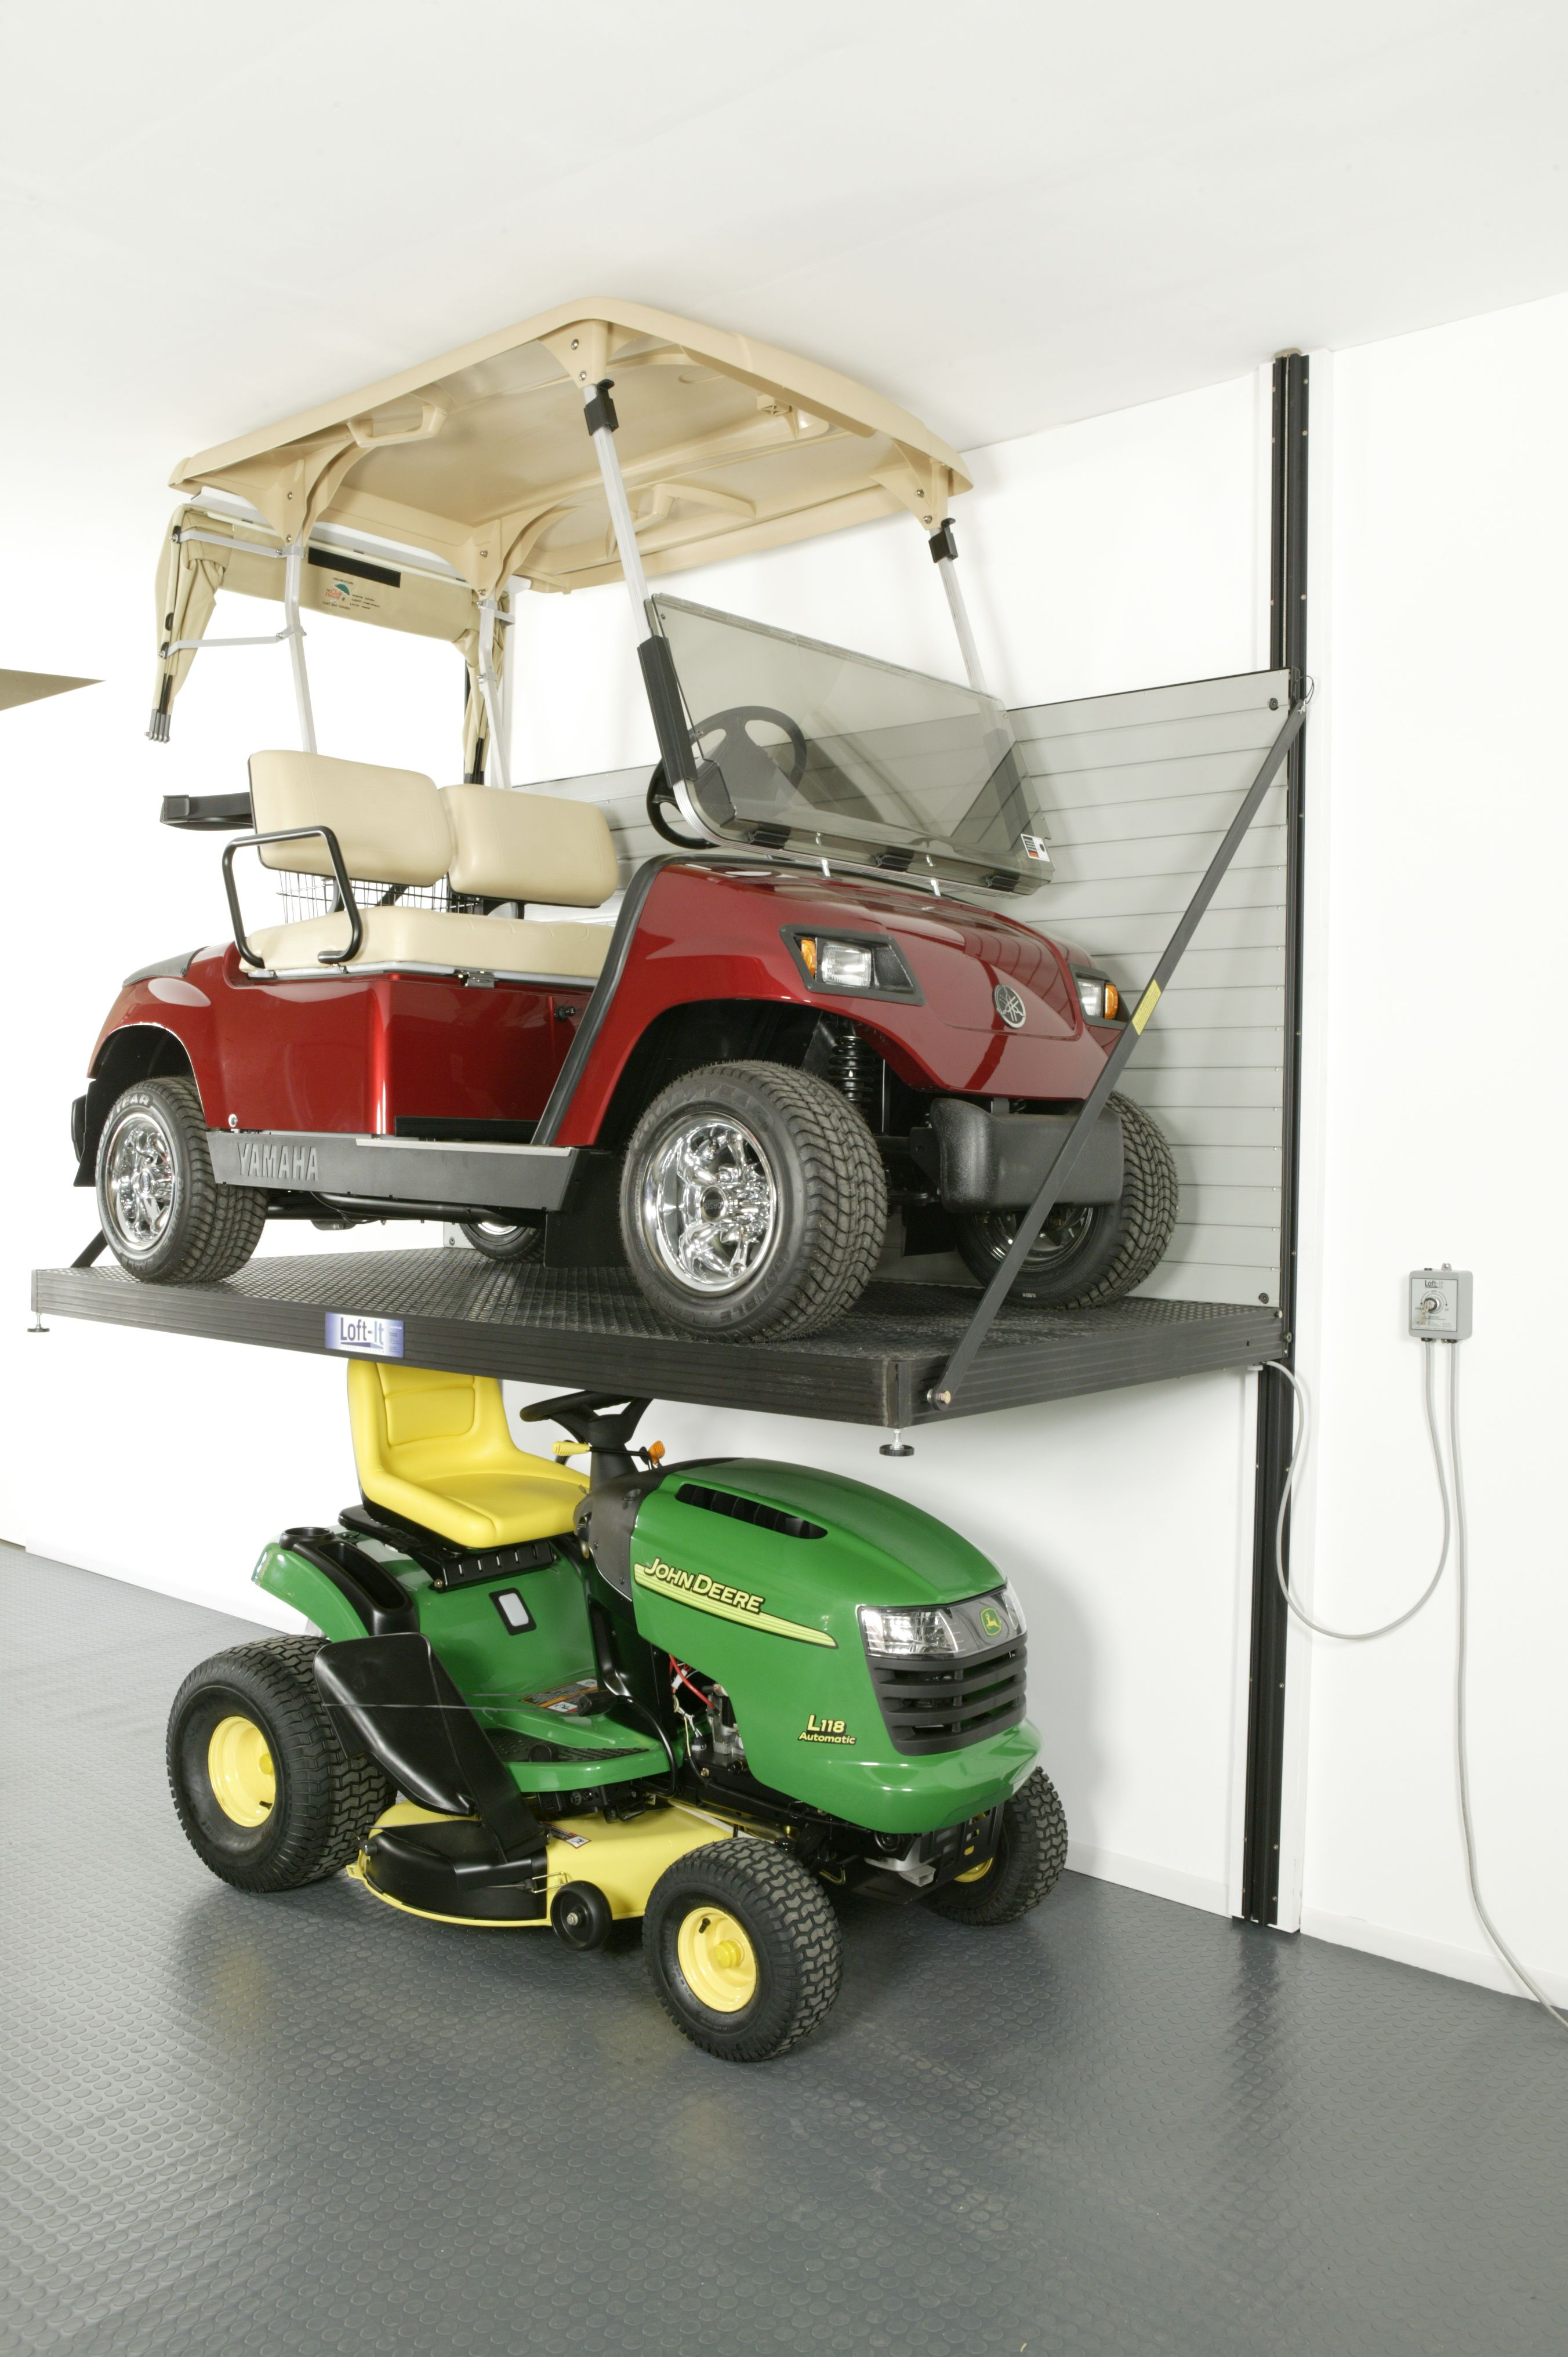 Motorcycle u0026 ATV Lifts for the Garage in Parrish FL | Garage Evolution & Motorcycle u0026 ATV Lifts for the Garage in Parrish FL | Garage ...